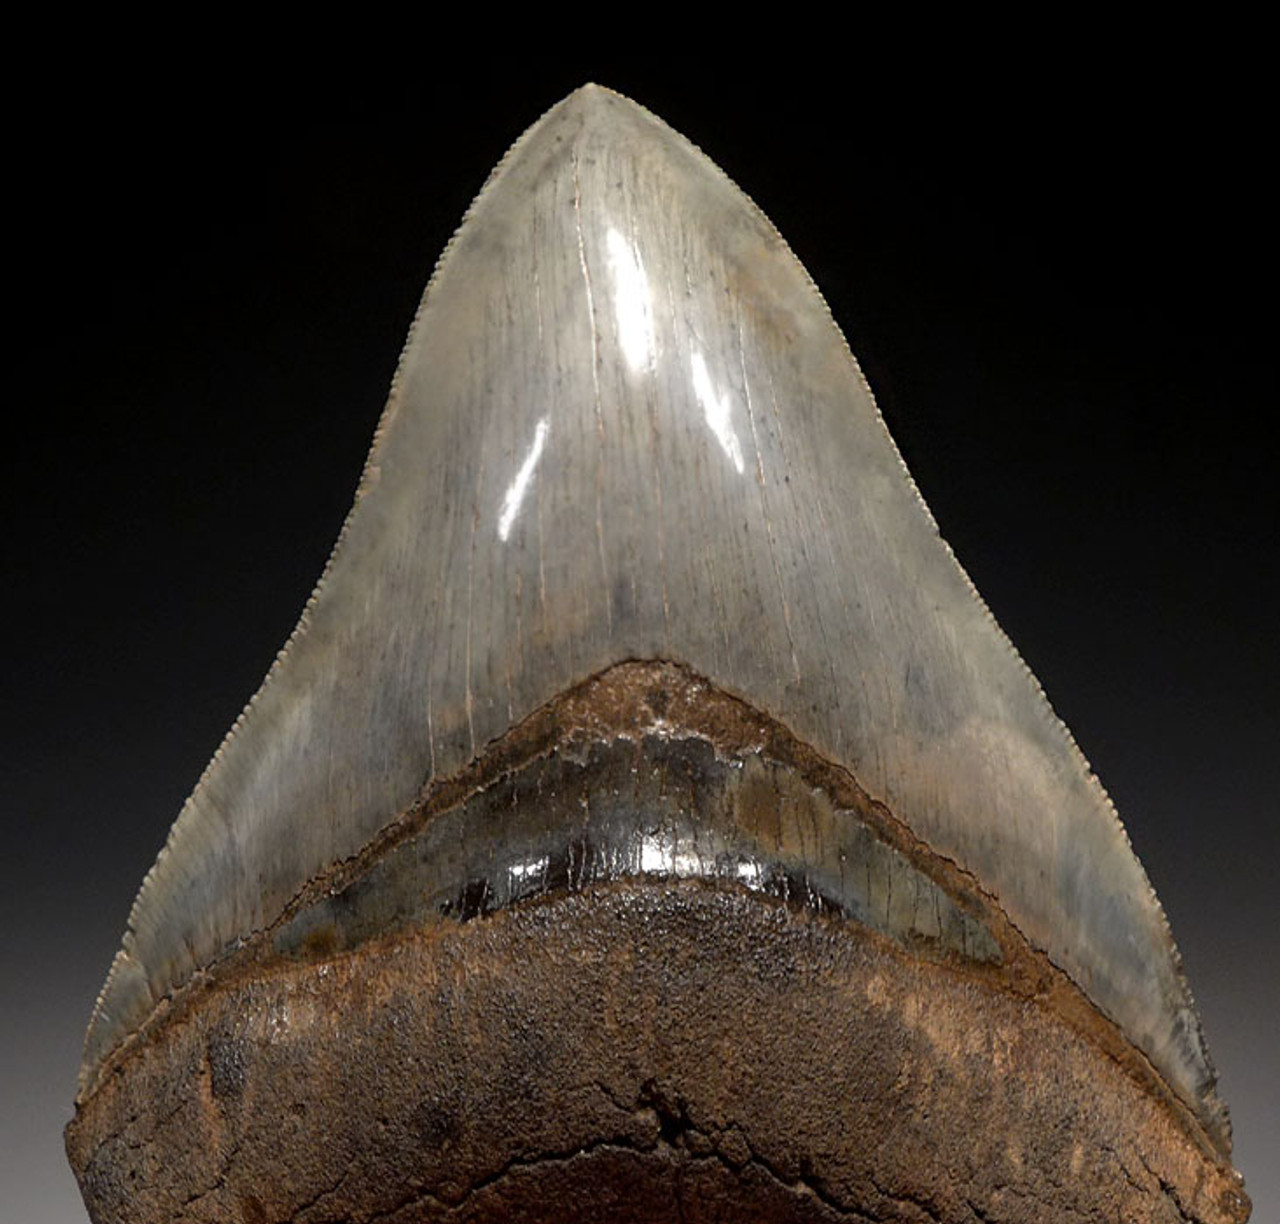 SH6-359 - COLLECTOR GRADE 4.4 INCH MEGALODON SHARK TOOTH WITH MOTTLED SMOKY BLUE GRAY ENAMEL